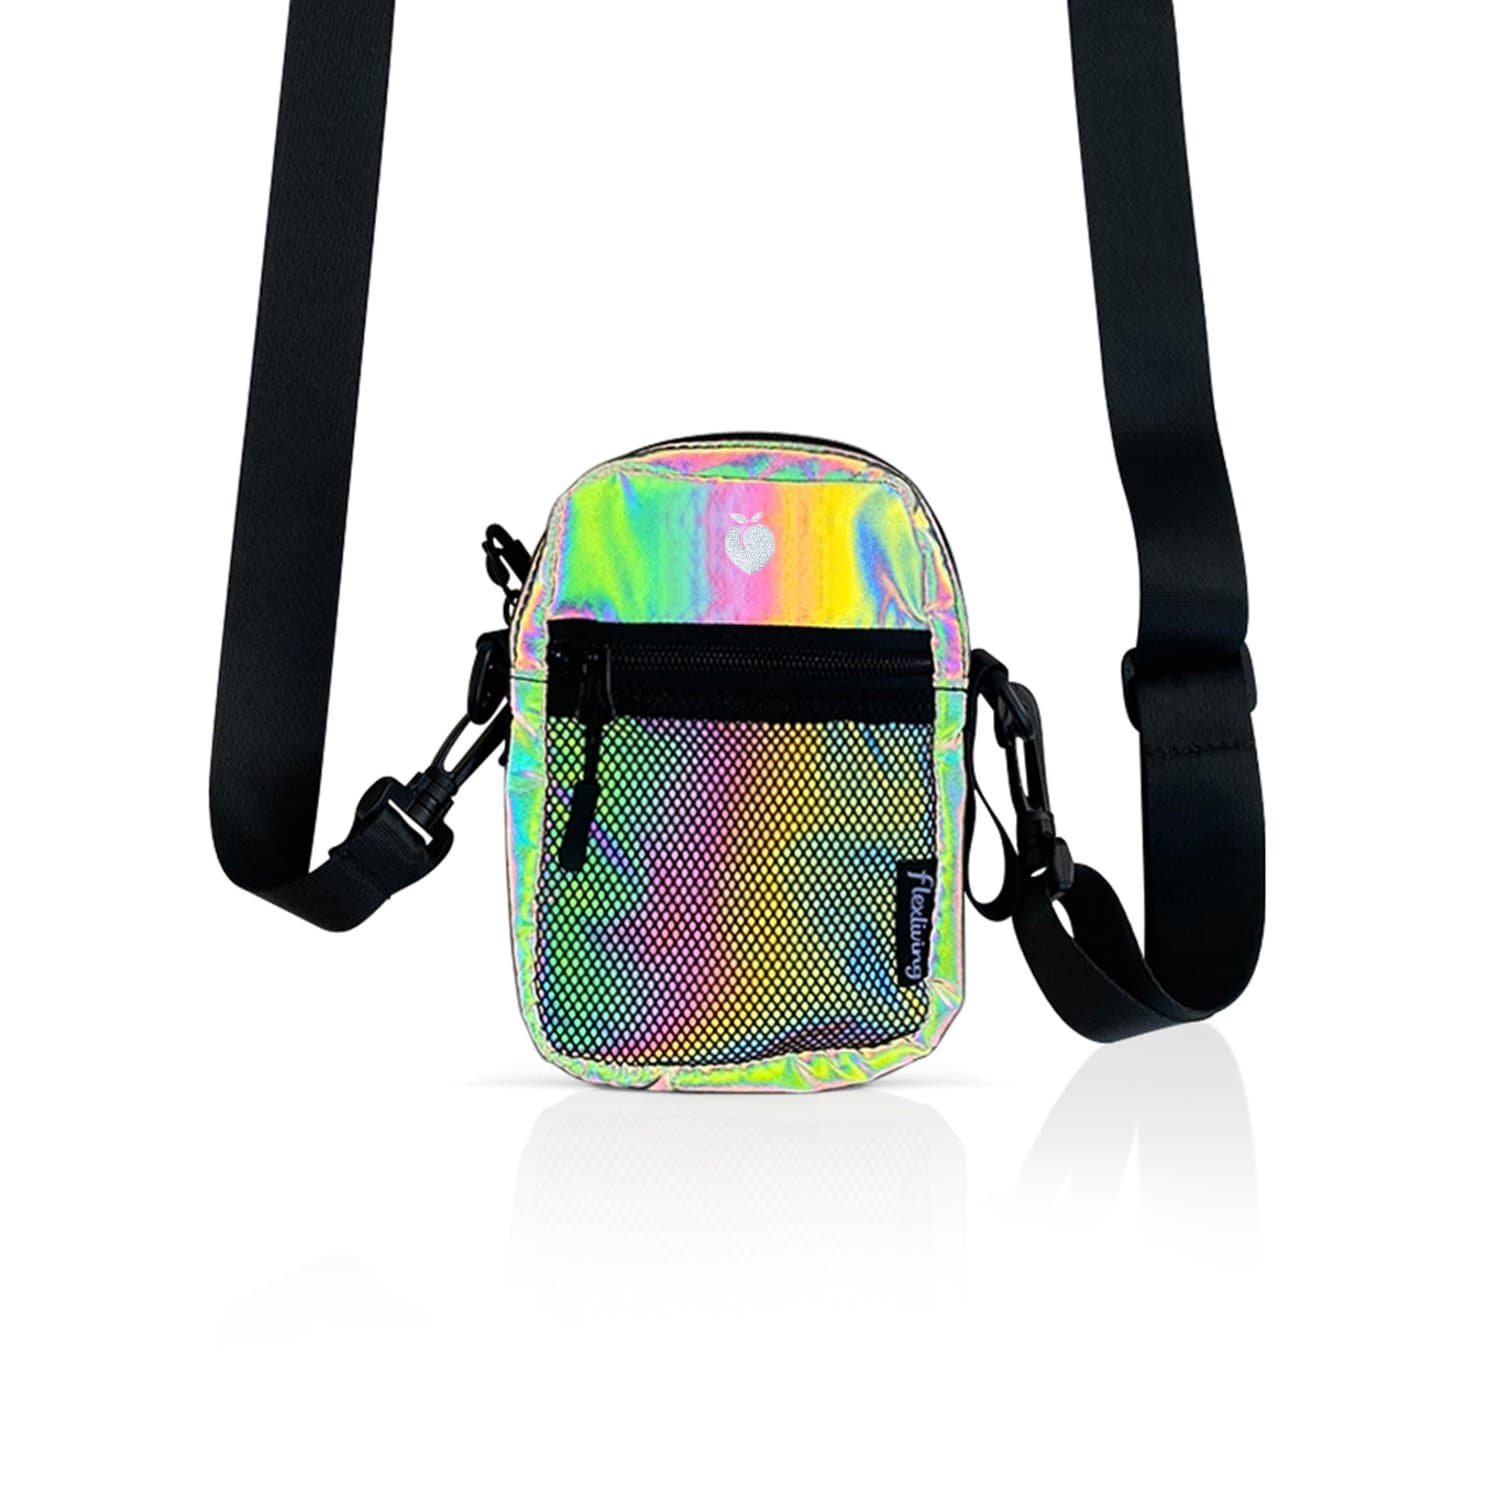 Crossbody Shoulder Bag - Rainbow Reflective